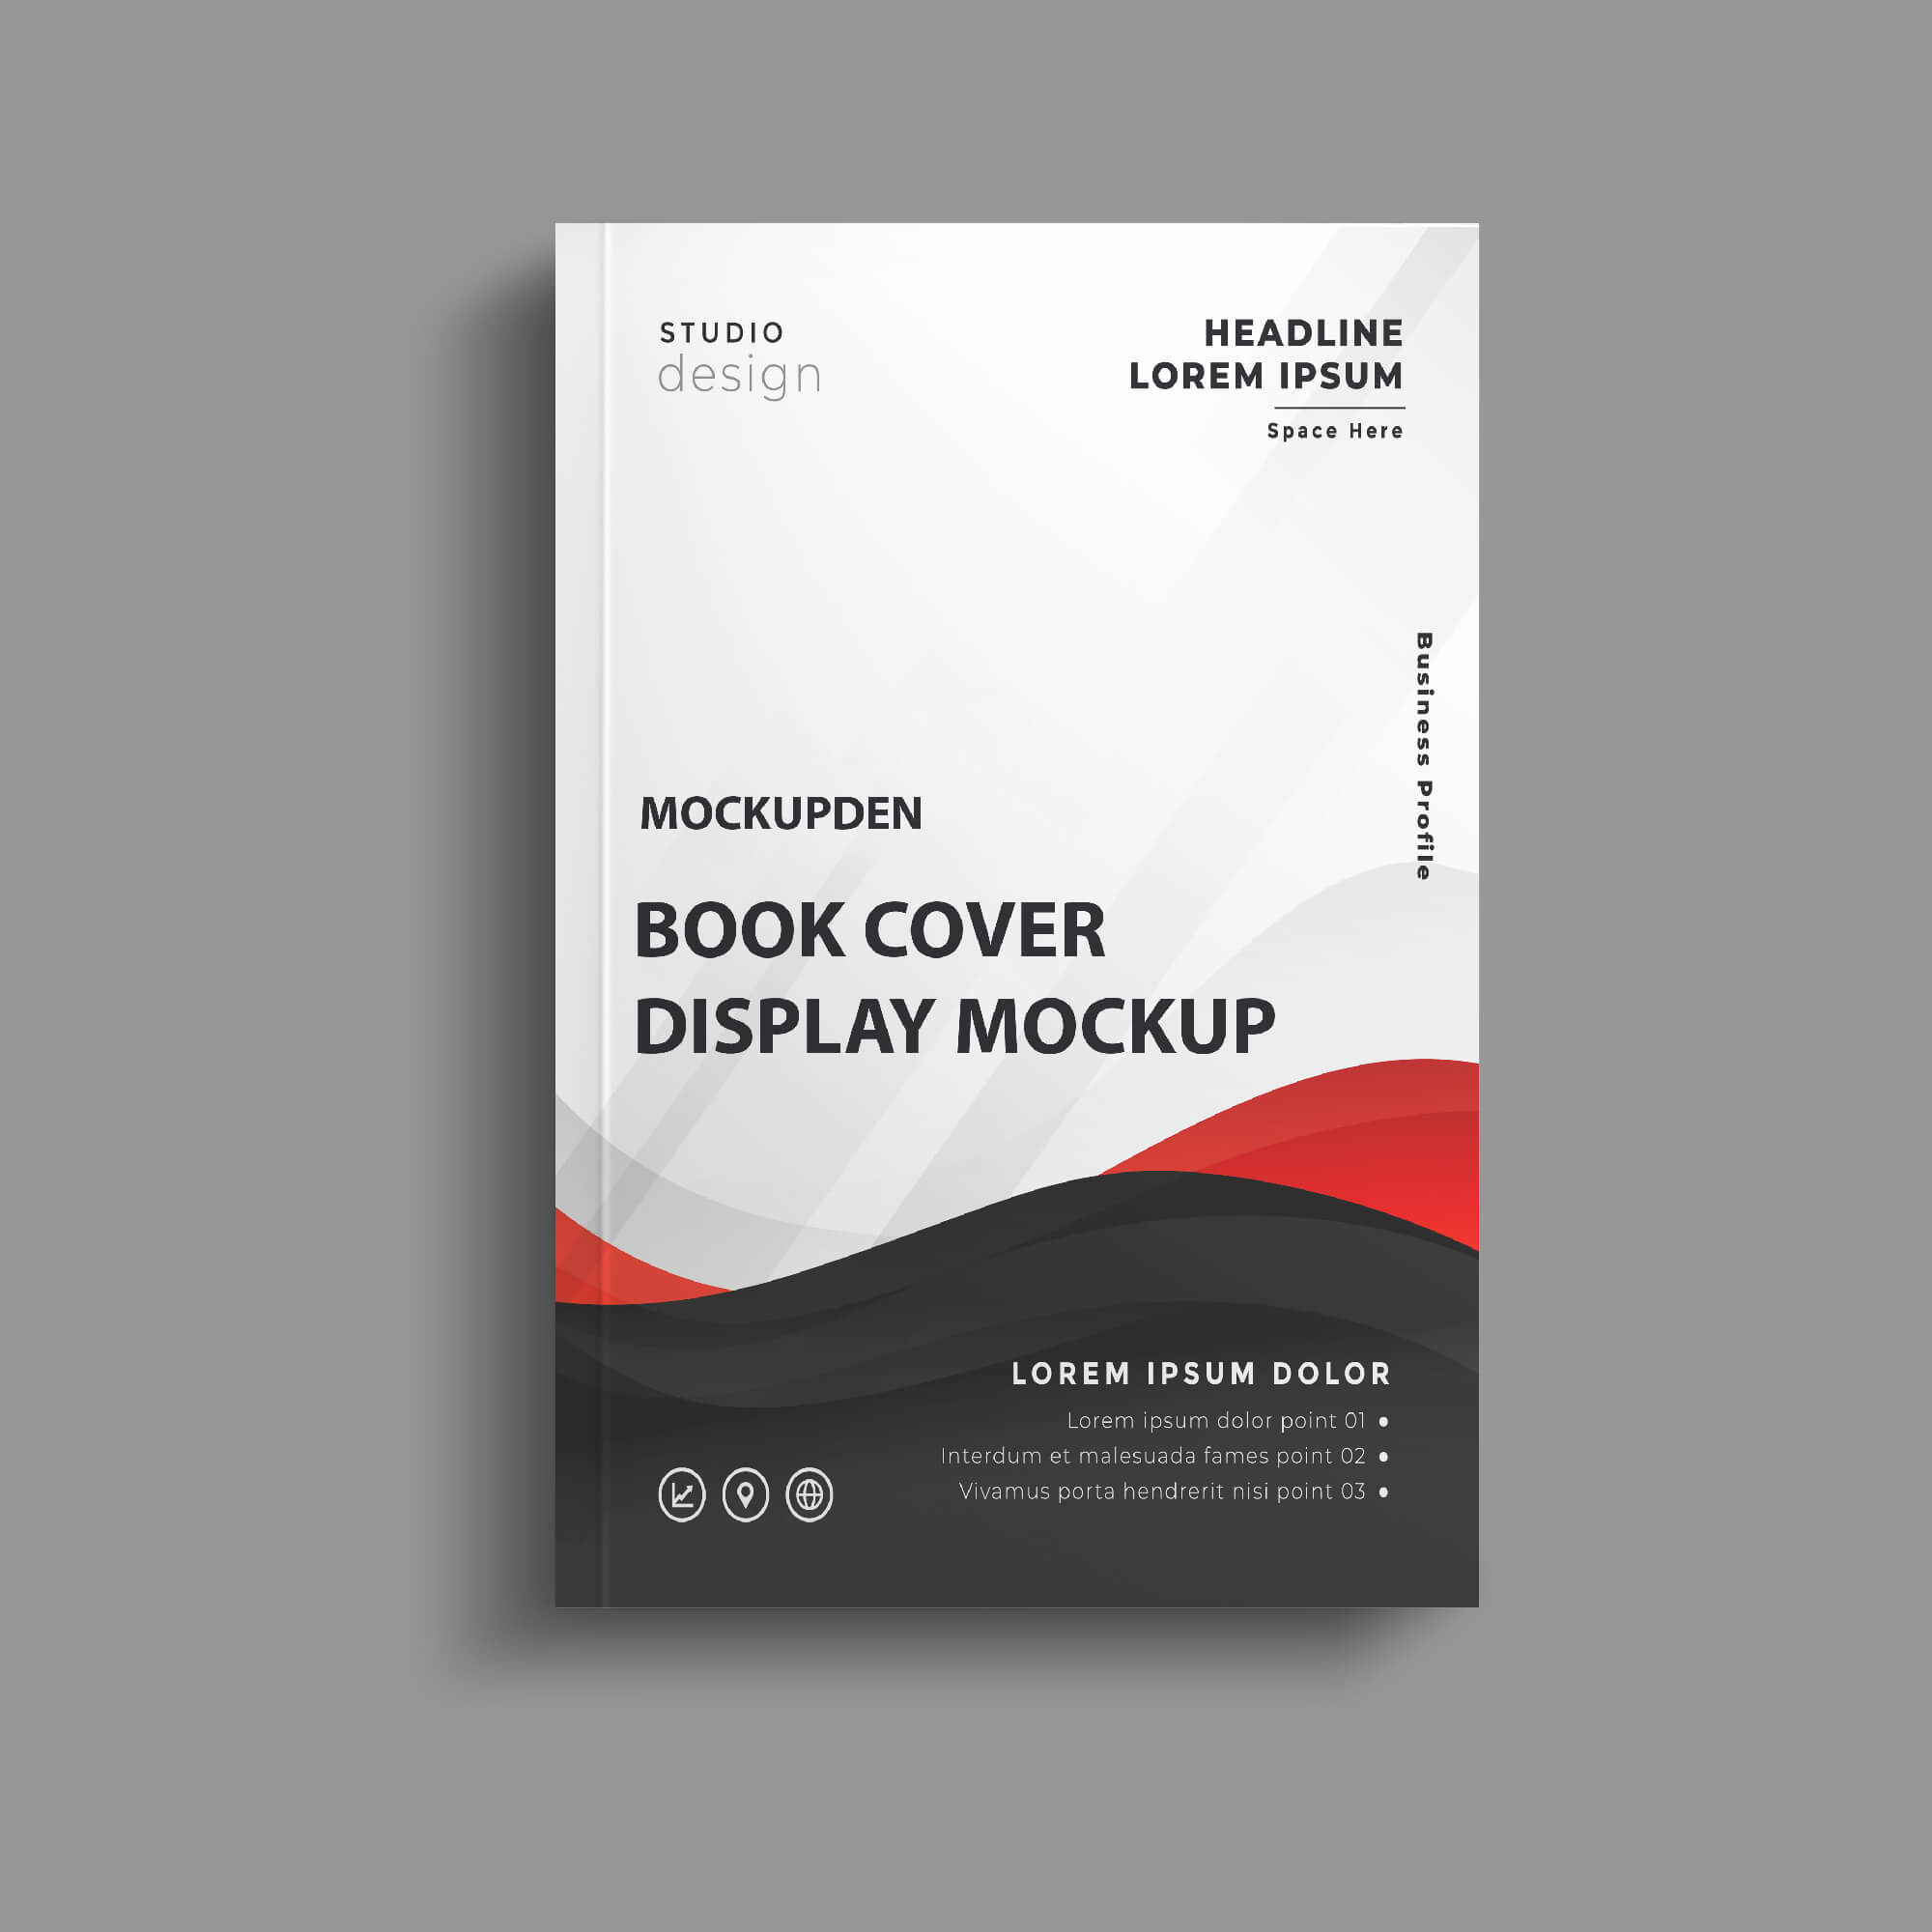 Design Free Book Cover Display Mockup PSD Template